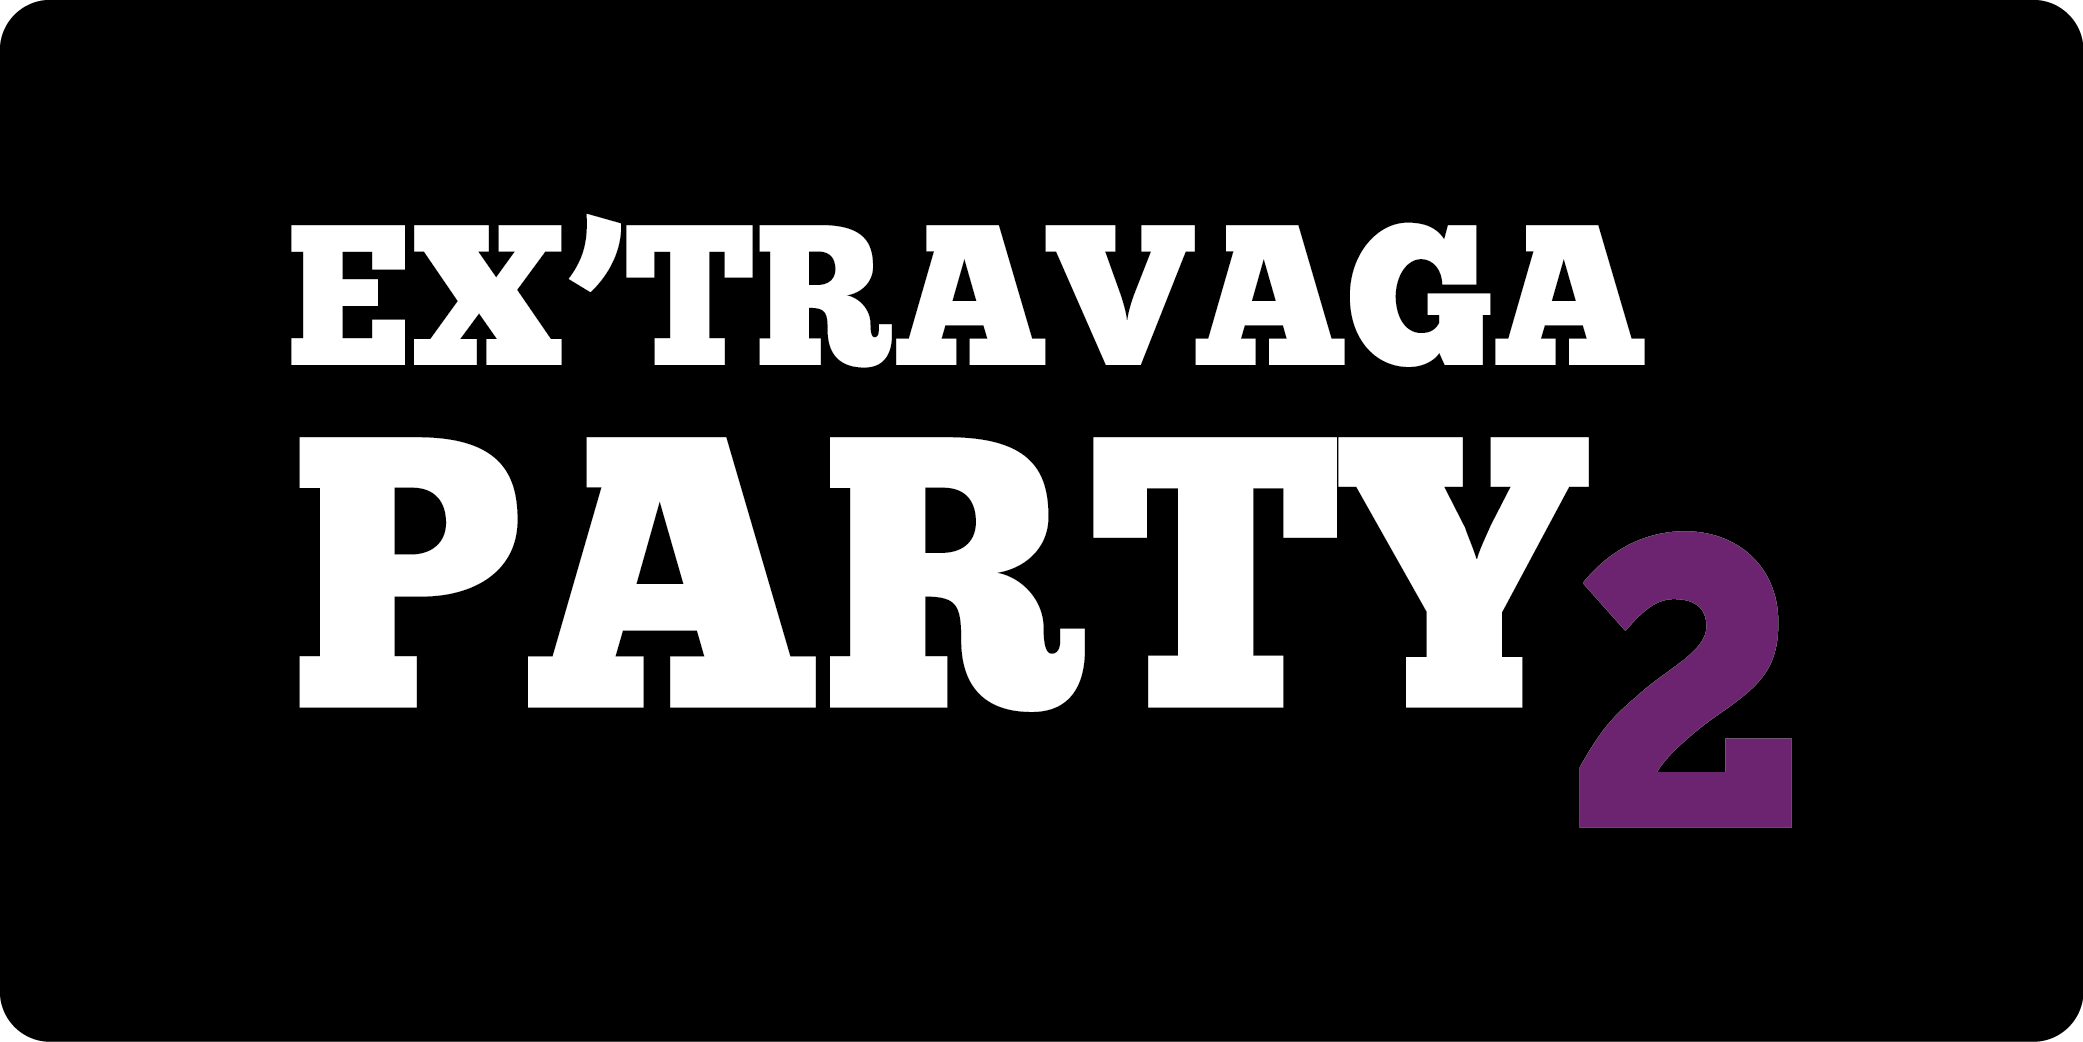 EX'TRAVAGA Party 2 Logo